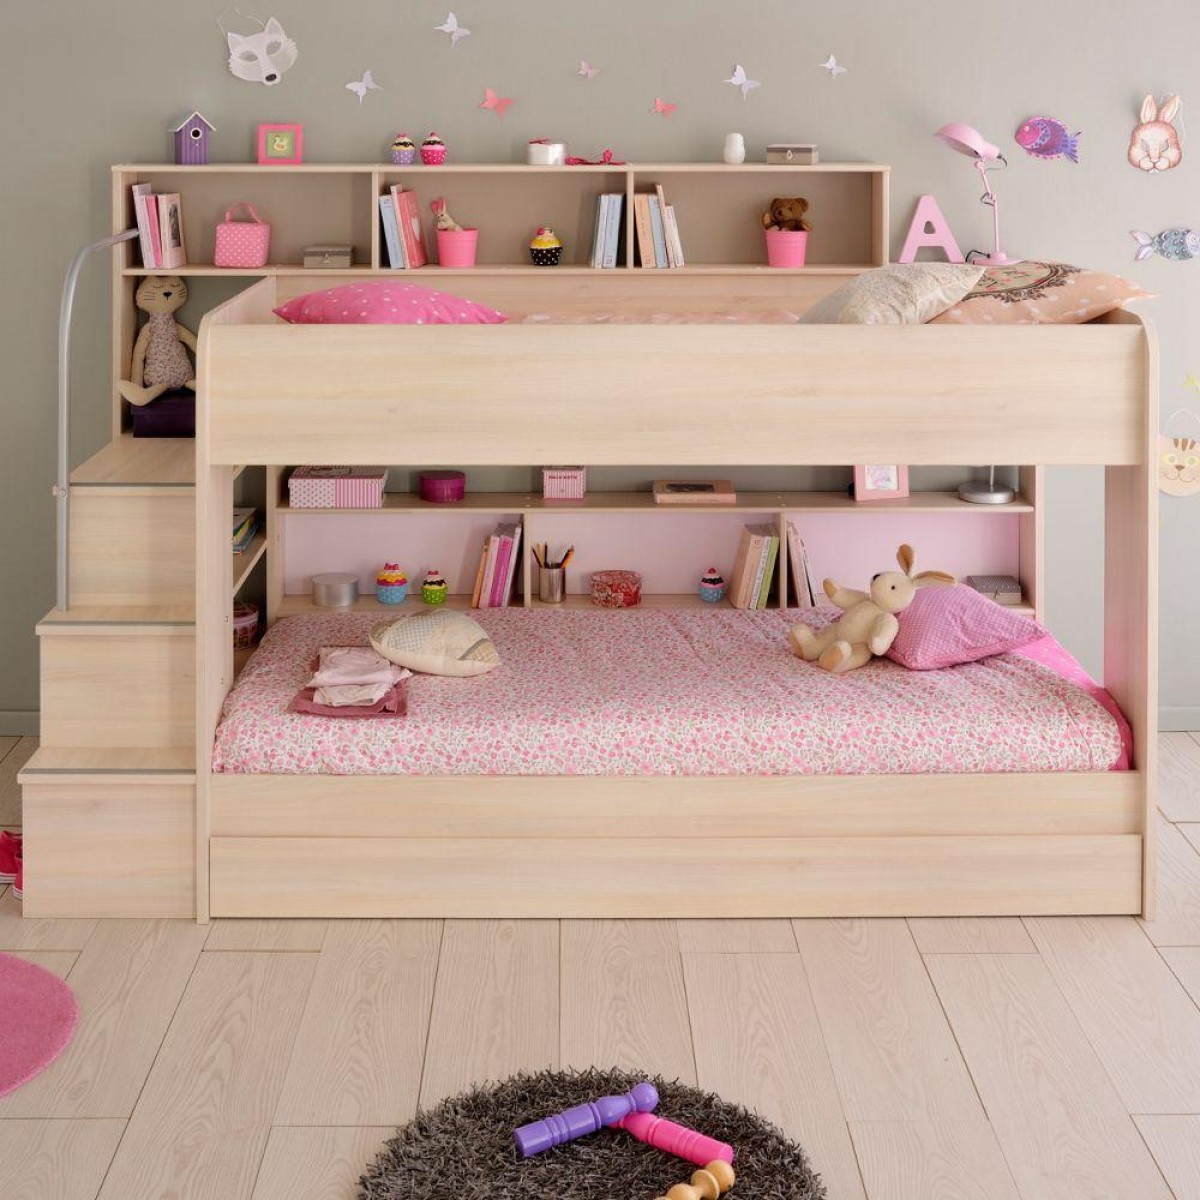 Bibop Acacia Wooden Bunk Bed with Underbed Storage Drawer